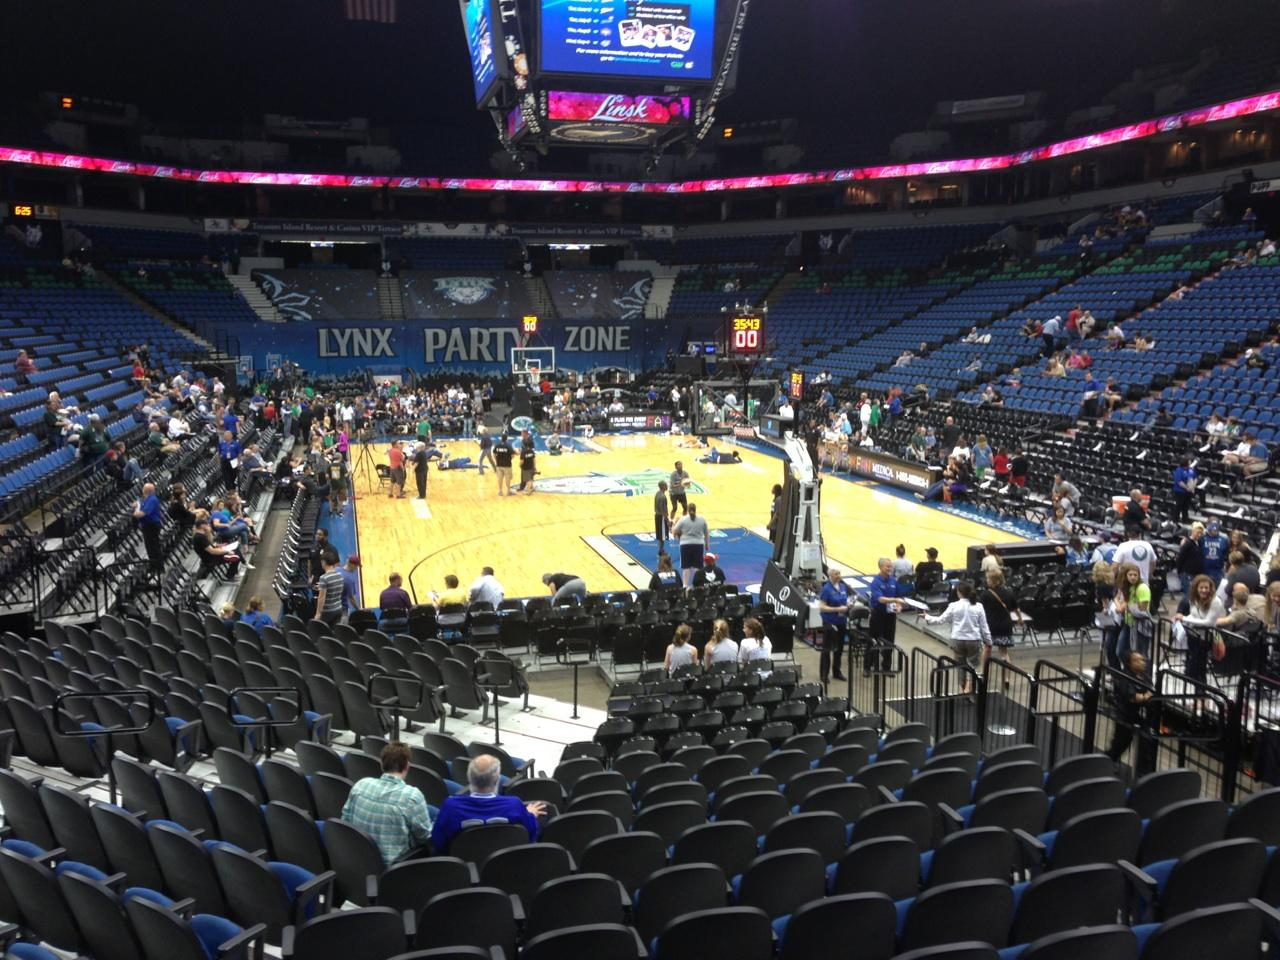 Target Center Section 104 Row L Seat 10